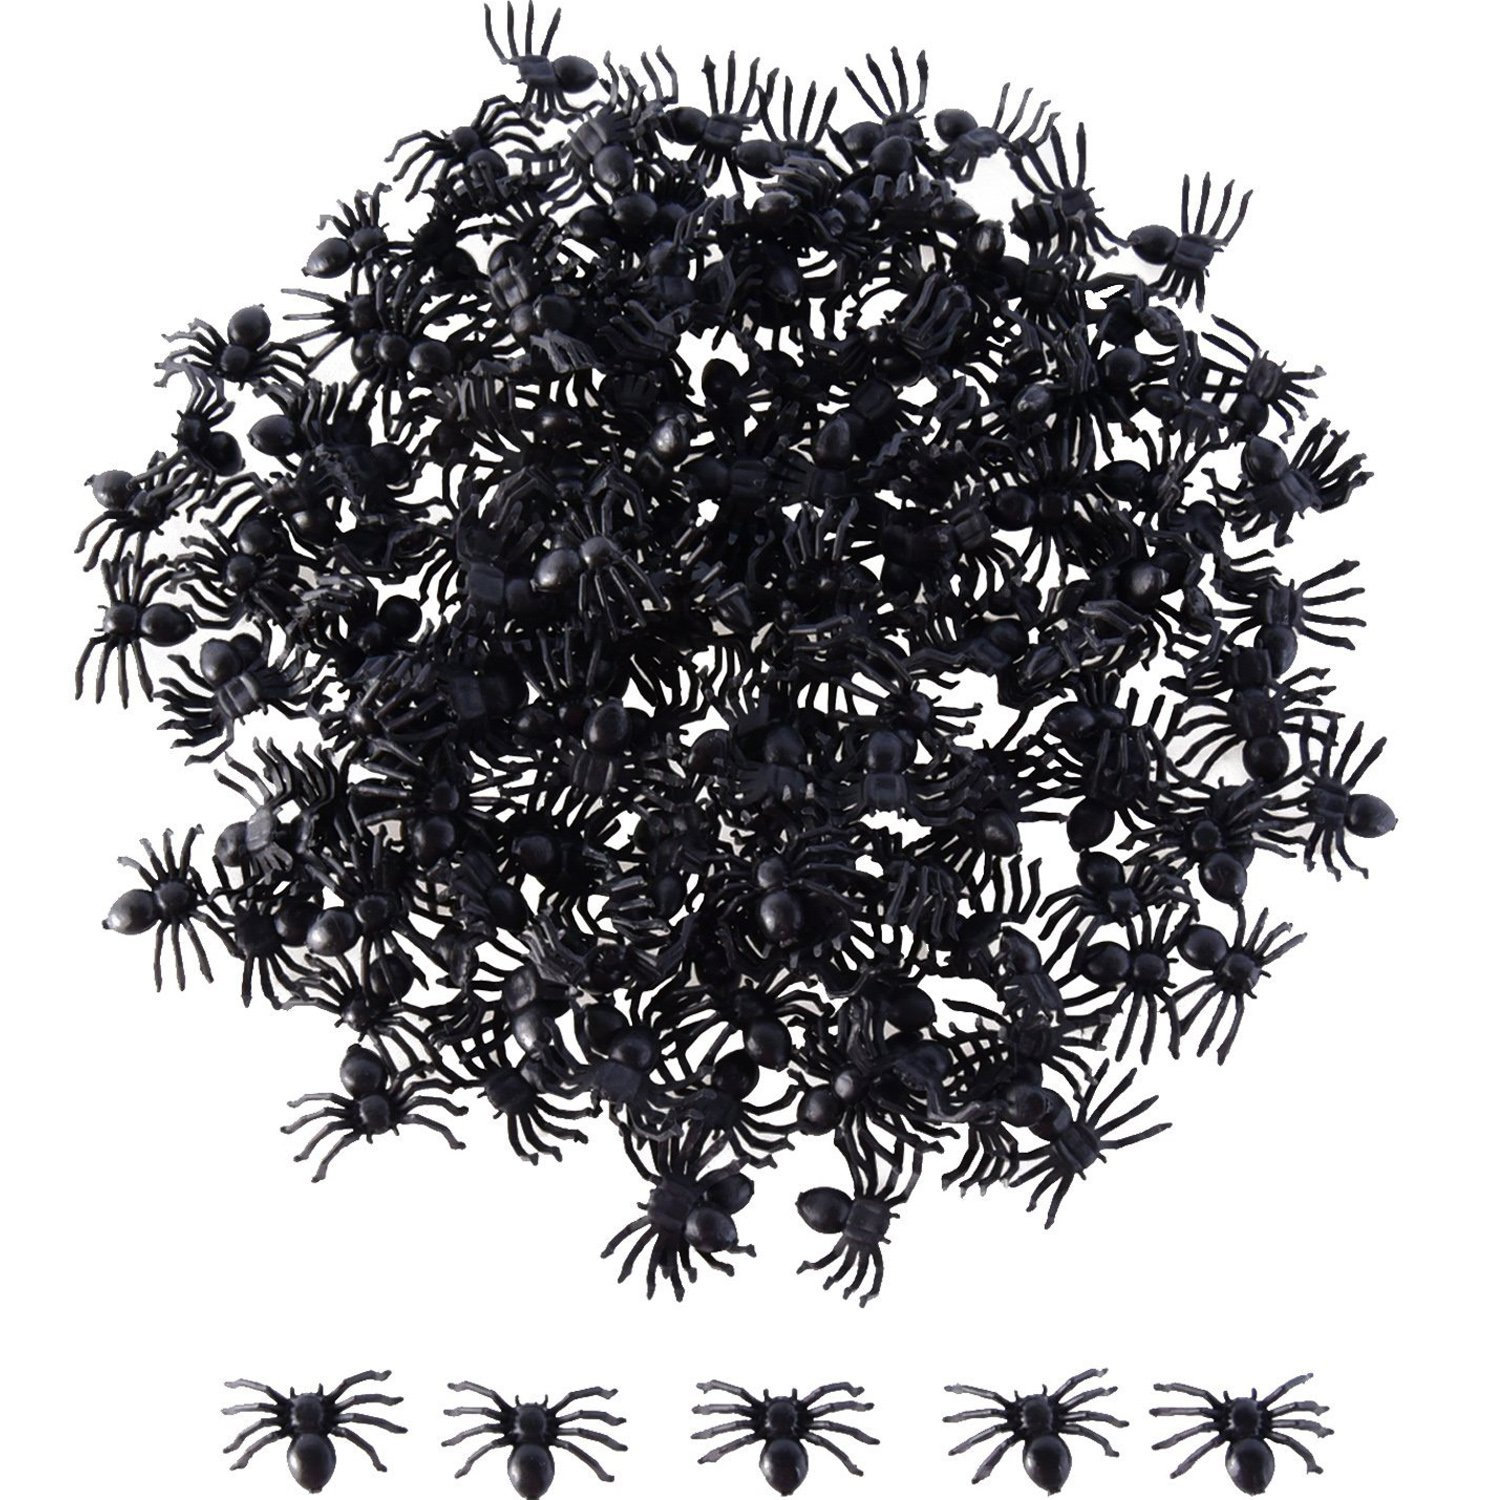 Sumind 200 Pack Halloween Black Spiders Plastic Spiders Party Favors for Halloween Decorations (Black Color)